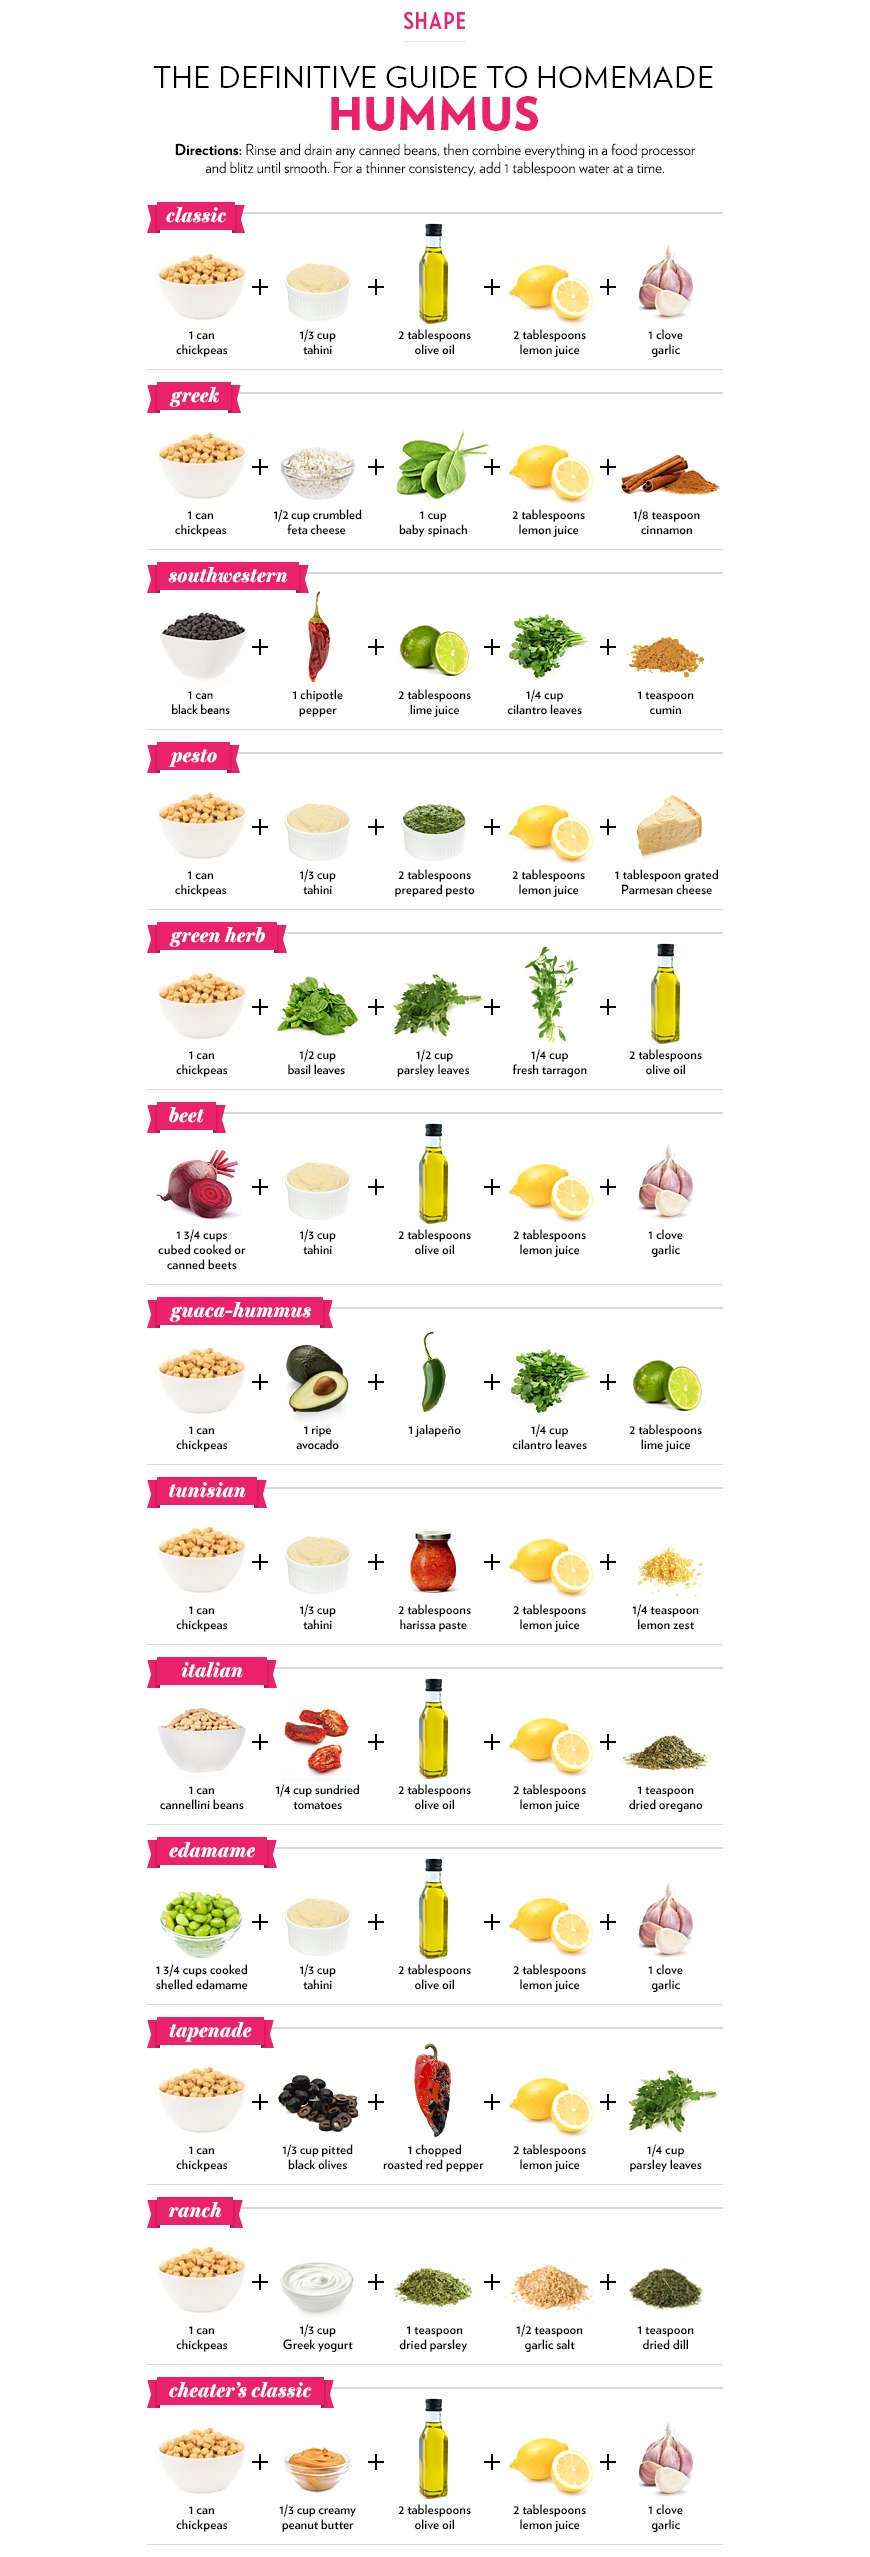 Ways to eat hummus